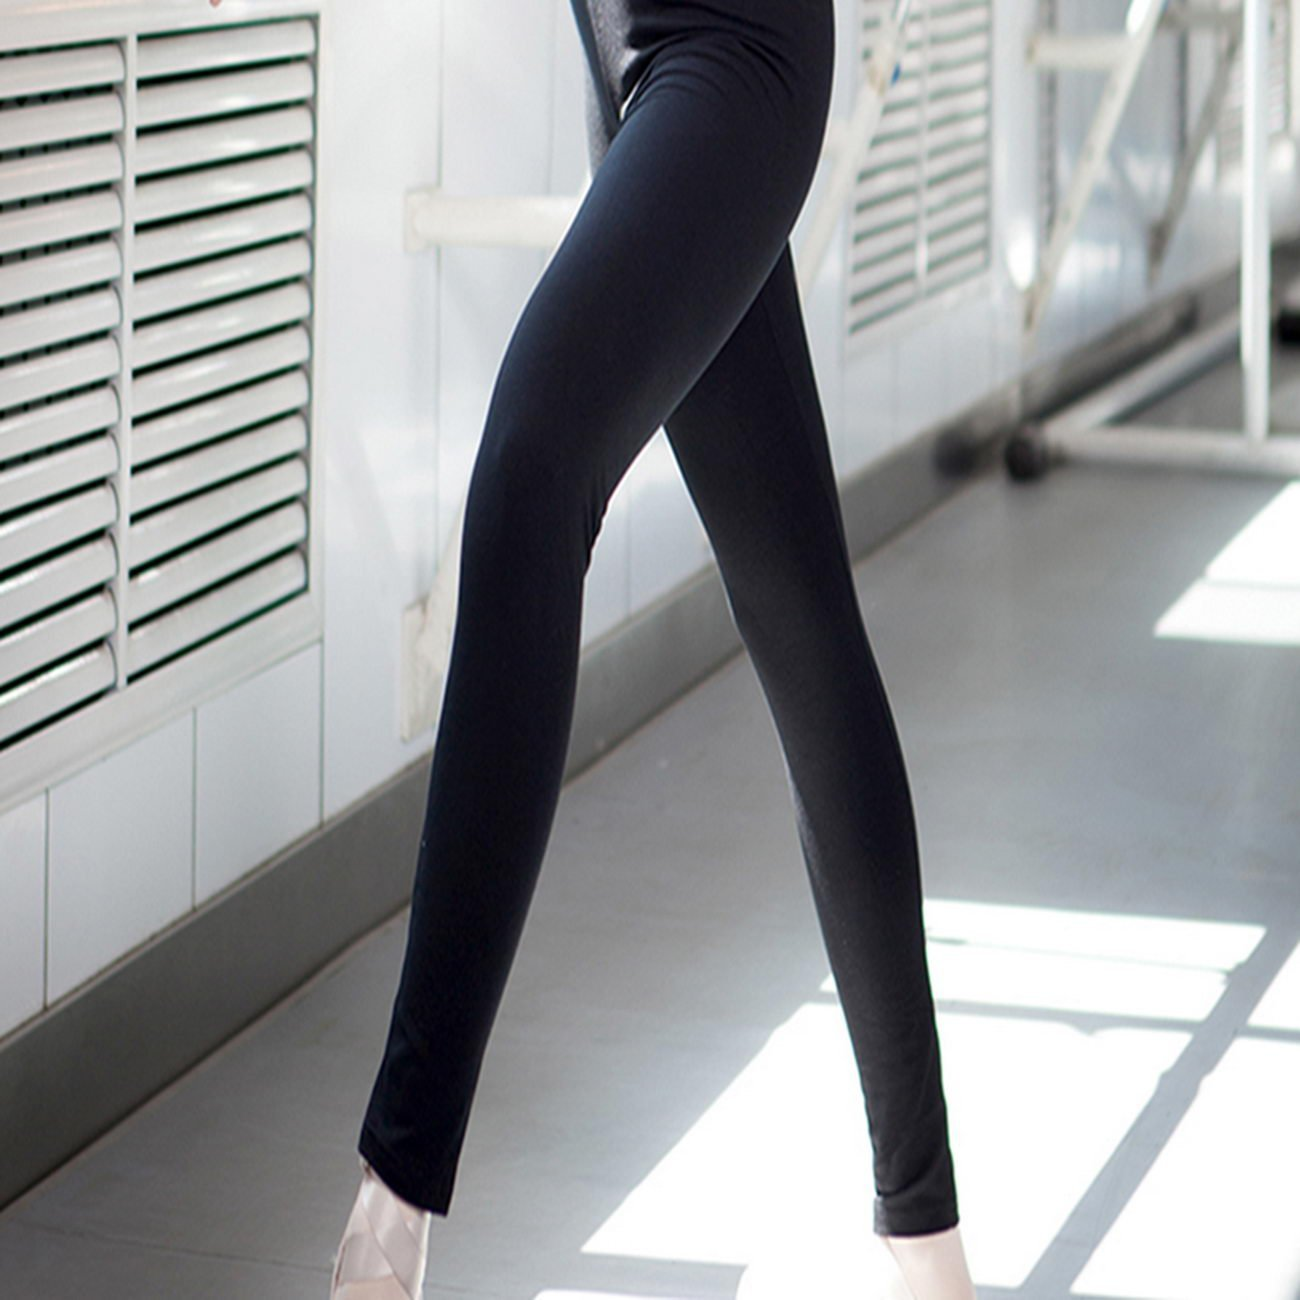 35a6f2db1aa Buy Adult Yoga pants Jazz Pants